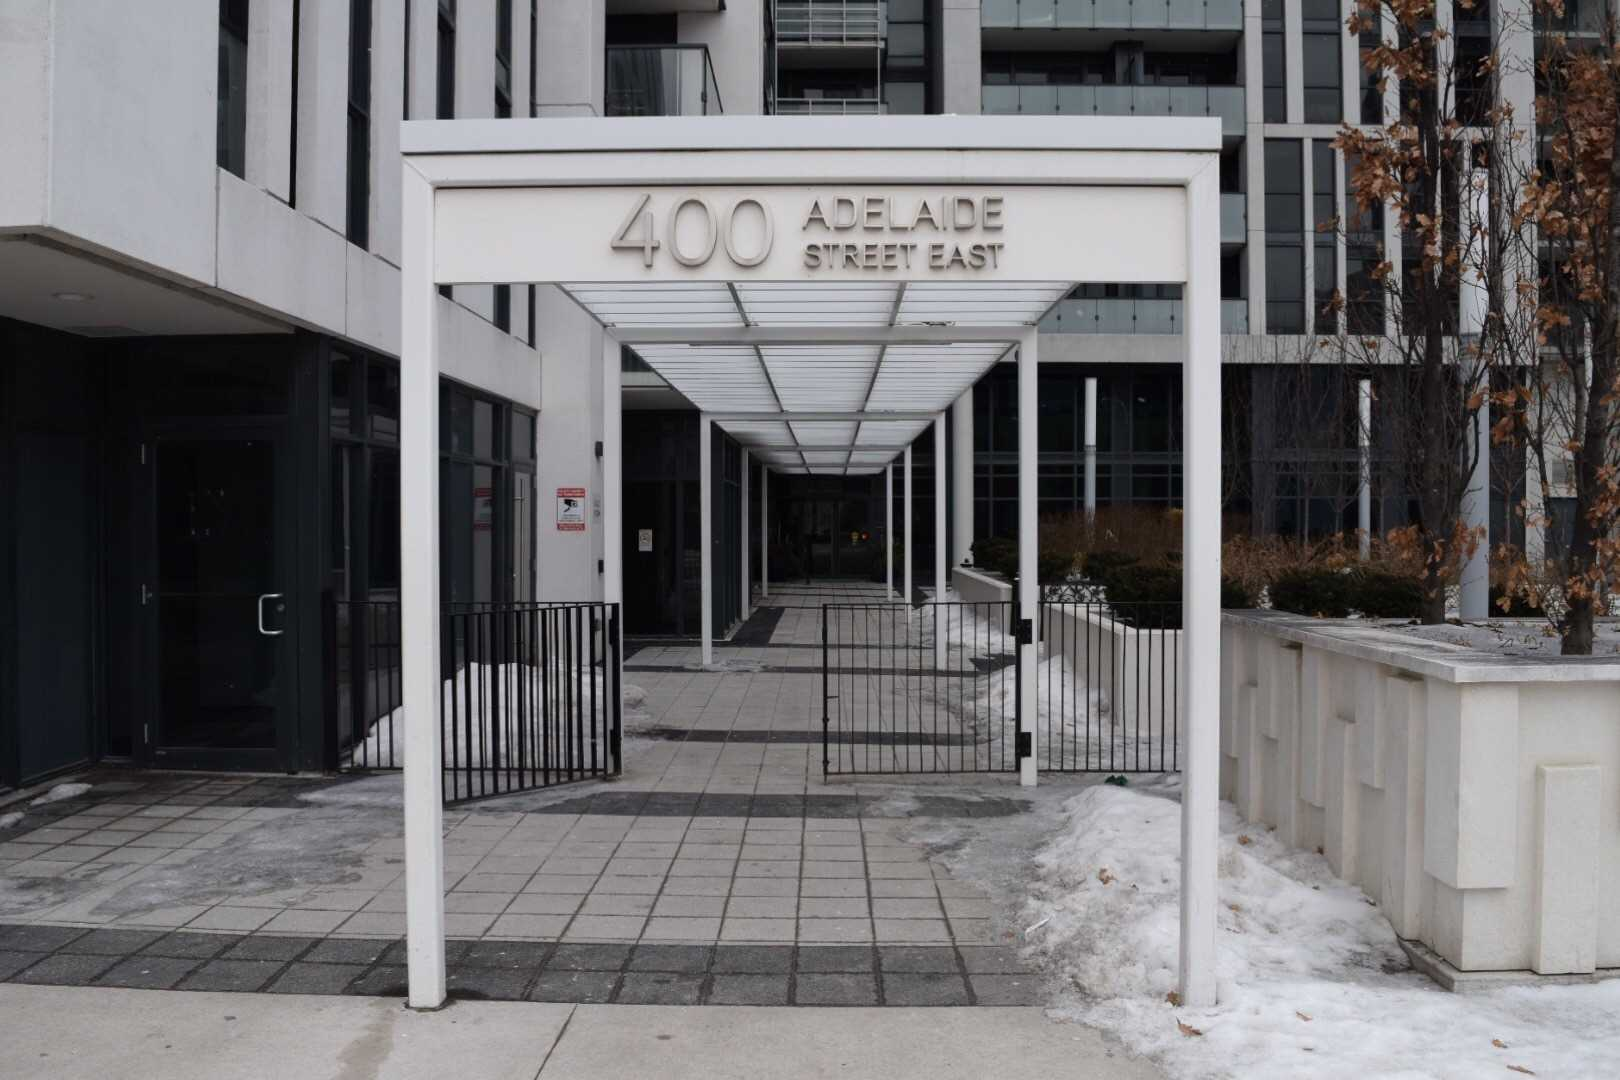 Ivory On Adelaide By Plazacorp. Approx 675 Sq Ft 1 Bdrm+Den. Overlooking West City Views. Modern Open Concept Layout W/Laminate Throughout. Master W/Walk-In Closet. Den W/Door Can Be Used As Guest Bdrm. 2nd Bath W/Stand Up Shower. 24 Hr Concierge, Gym, Party Lounge, Outdoor Terrace. Steps To St Lawrence Market, T.T.C. Street Cards, George Brown College, Distillery, Financial Districts, Grocers, Shoppes, Diners.